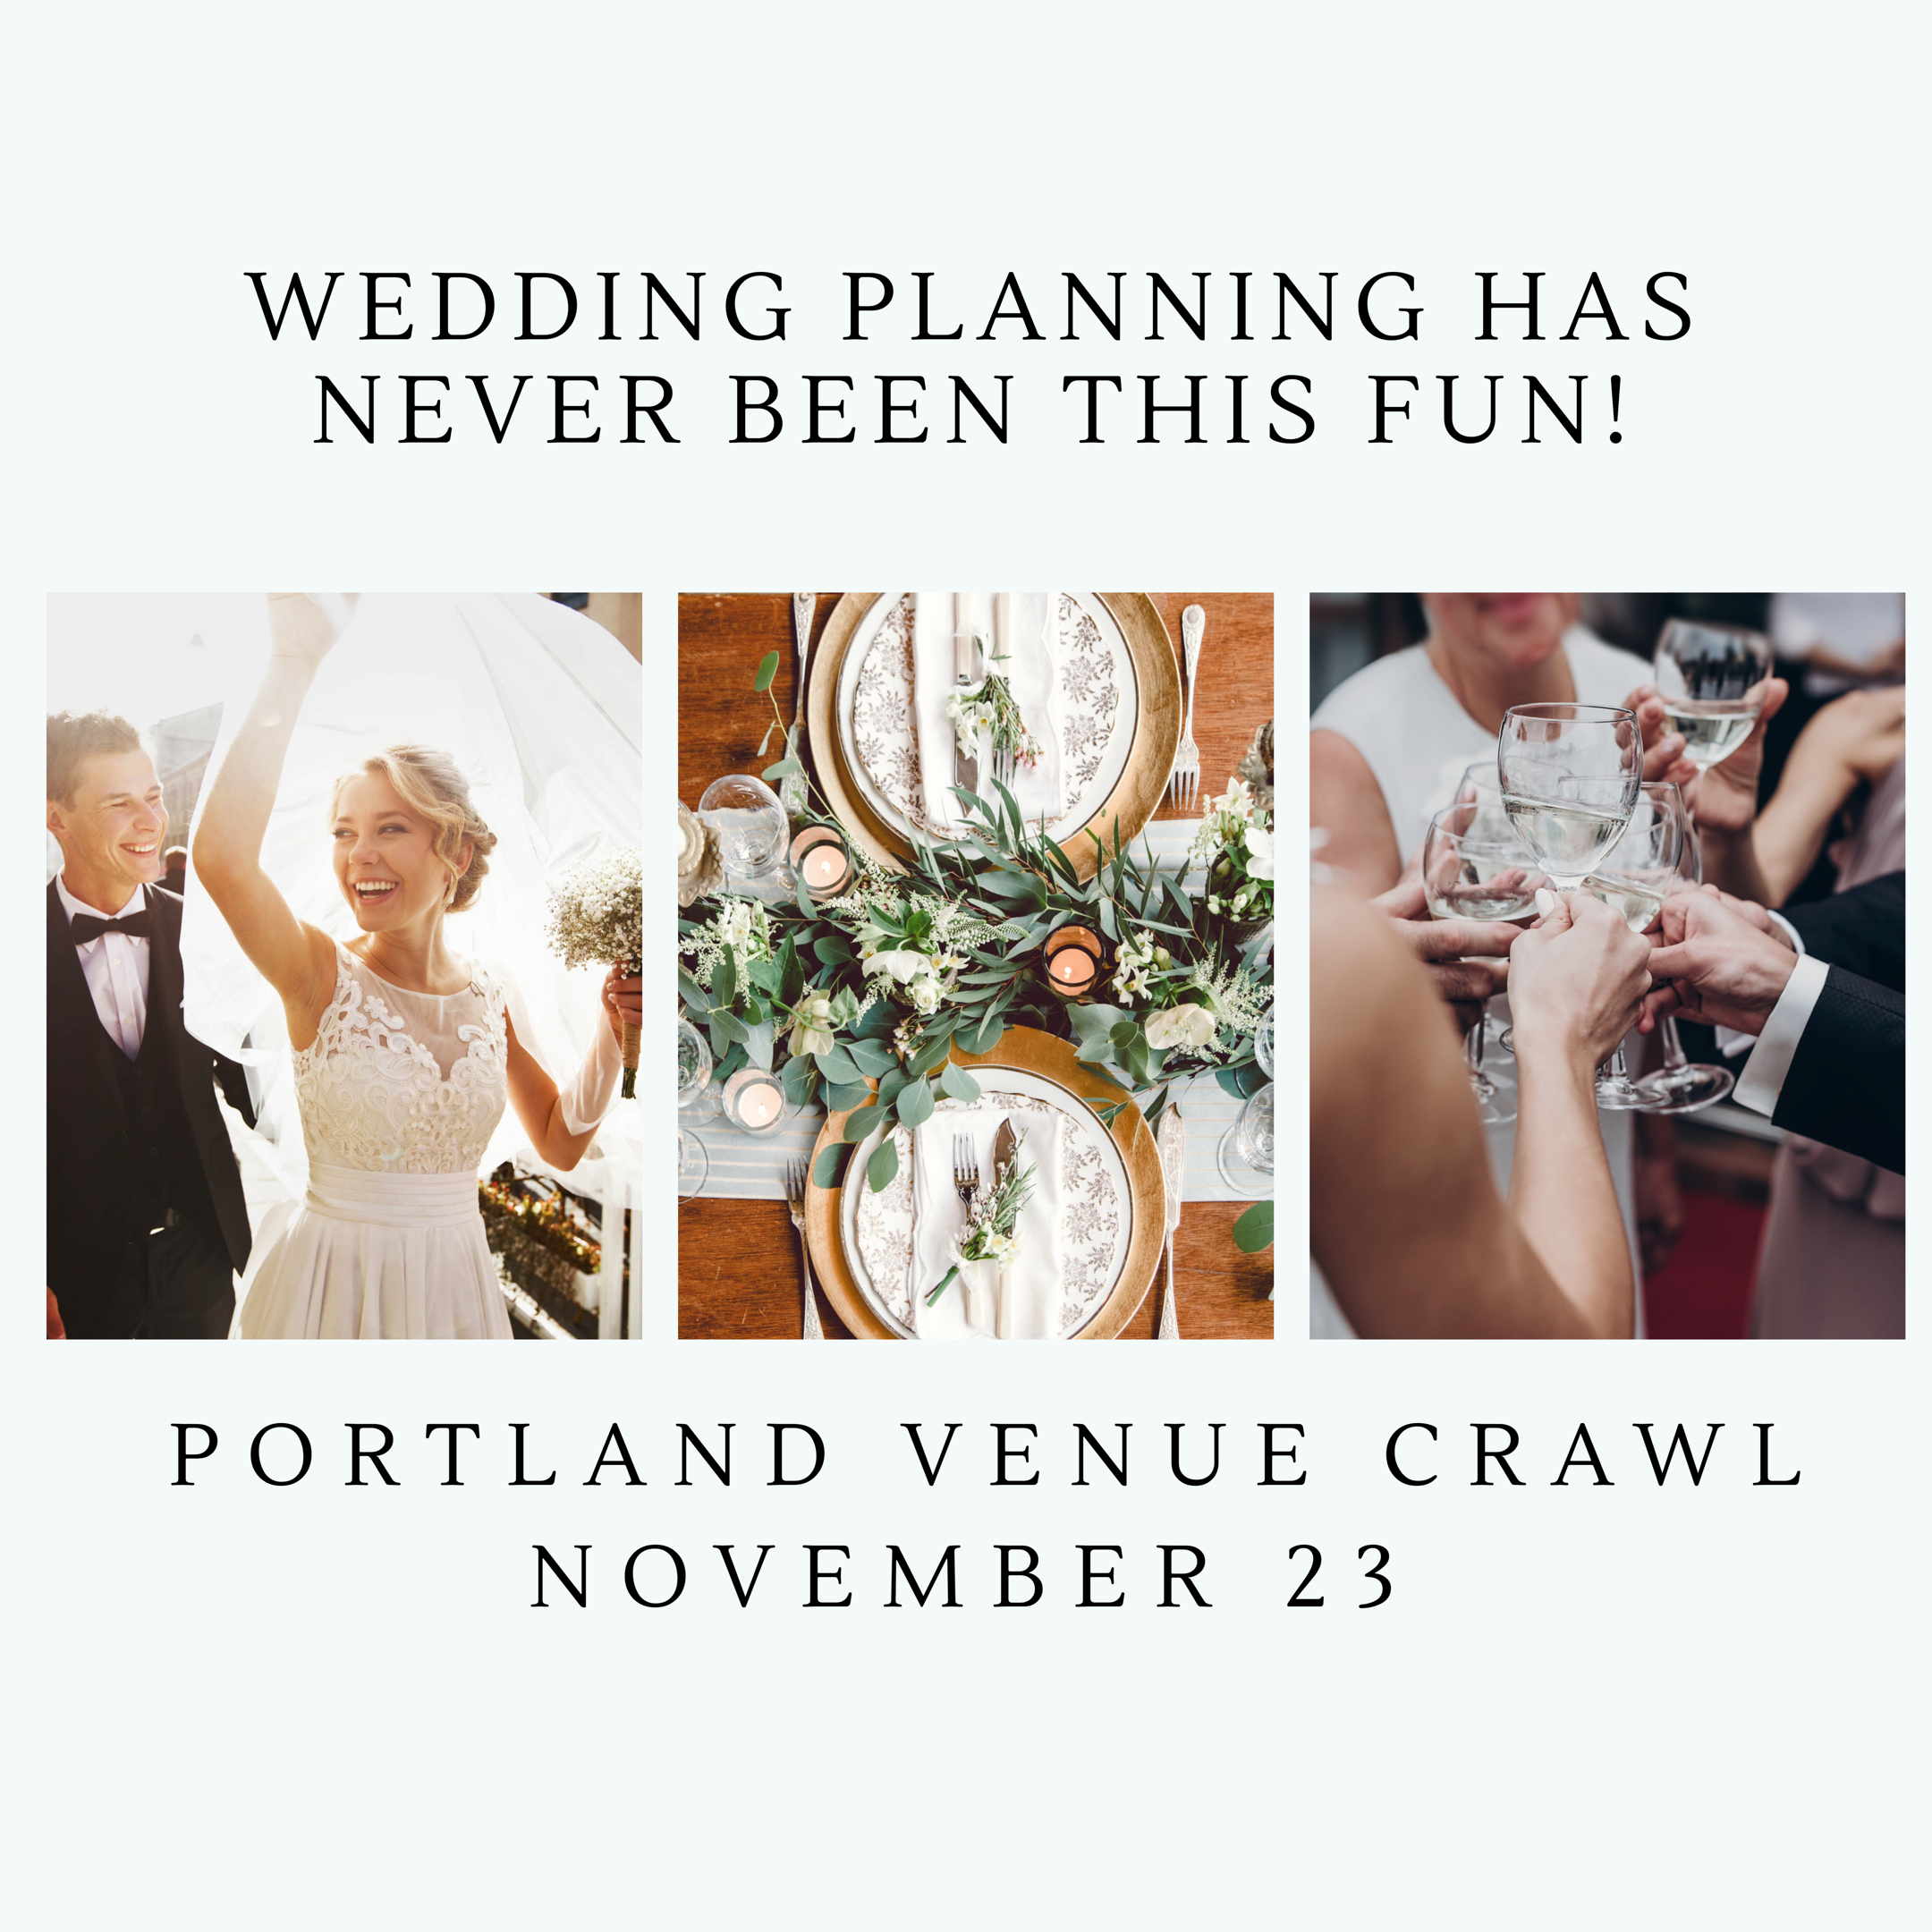 Portland Venue Crawl